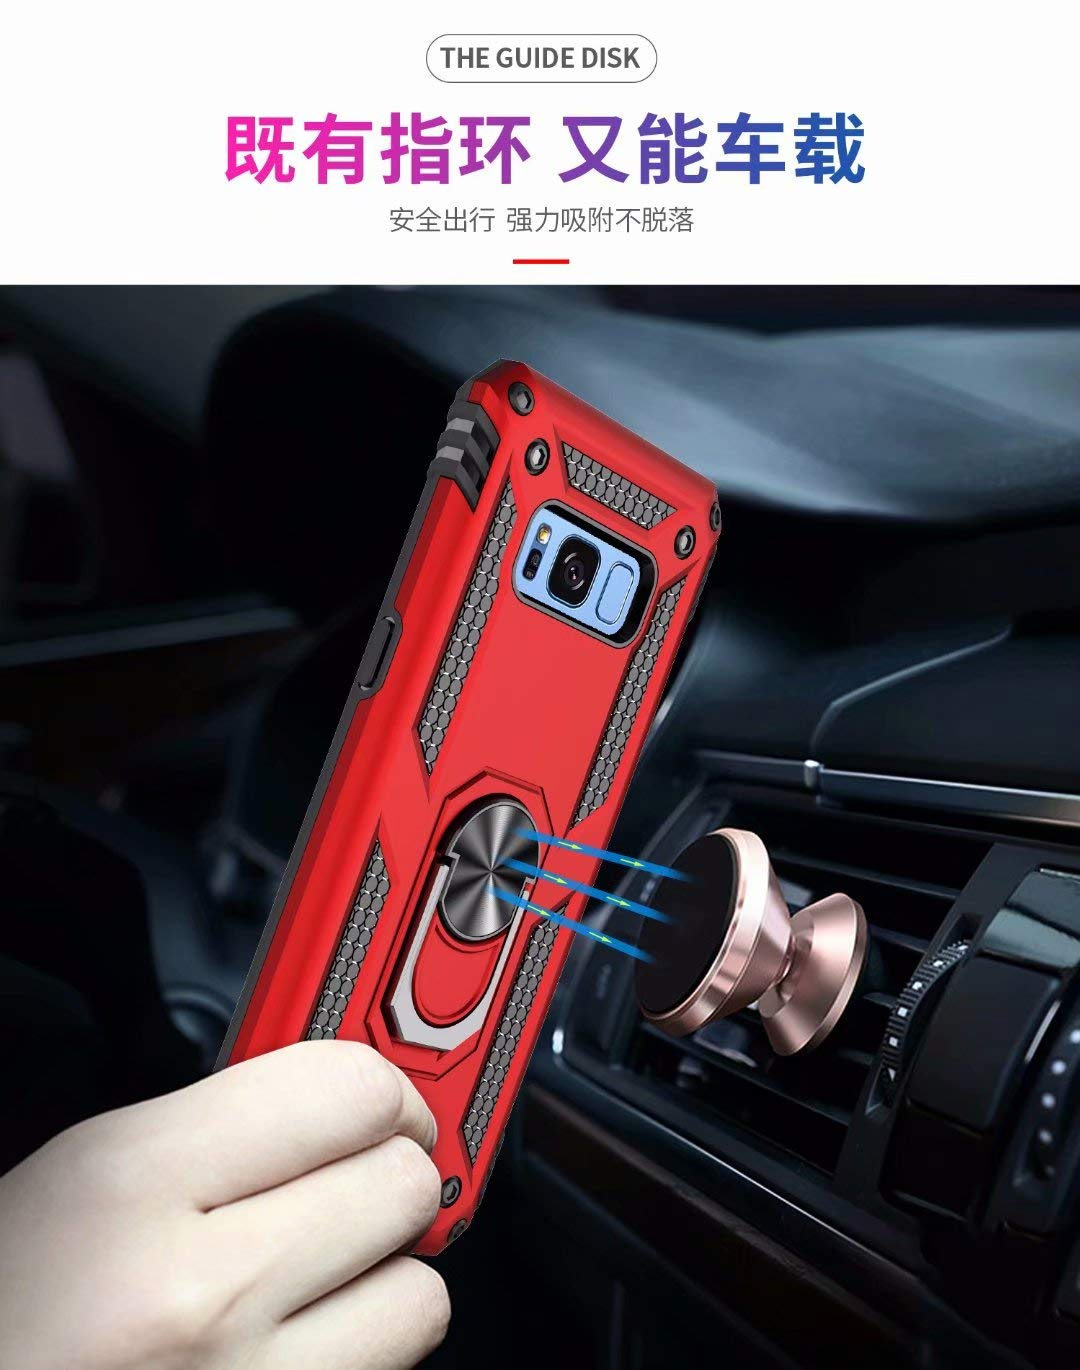 DAMONDY Galaxy S8 Case,360 Degree Rotating Ring Armor Dual Layer Ring Kickstand Shockproof Drop Protection Compatible Magnetic Car Mount case Holder for Samsung Galaxy S8-red